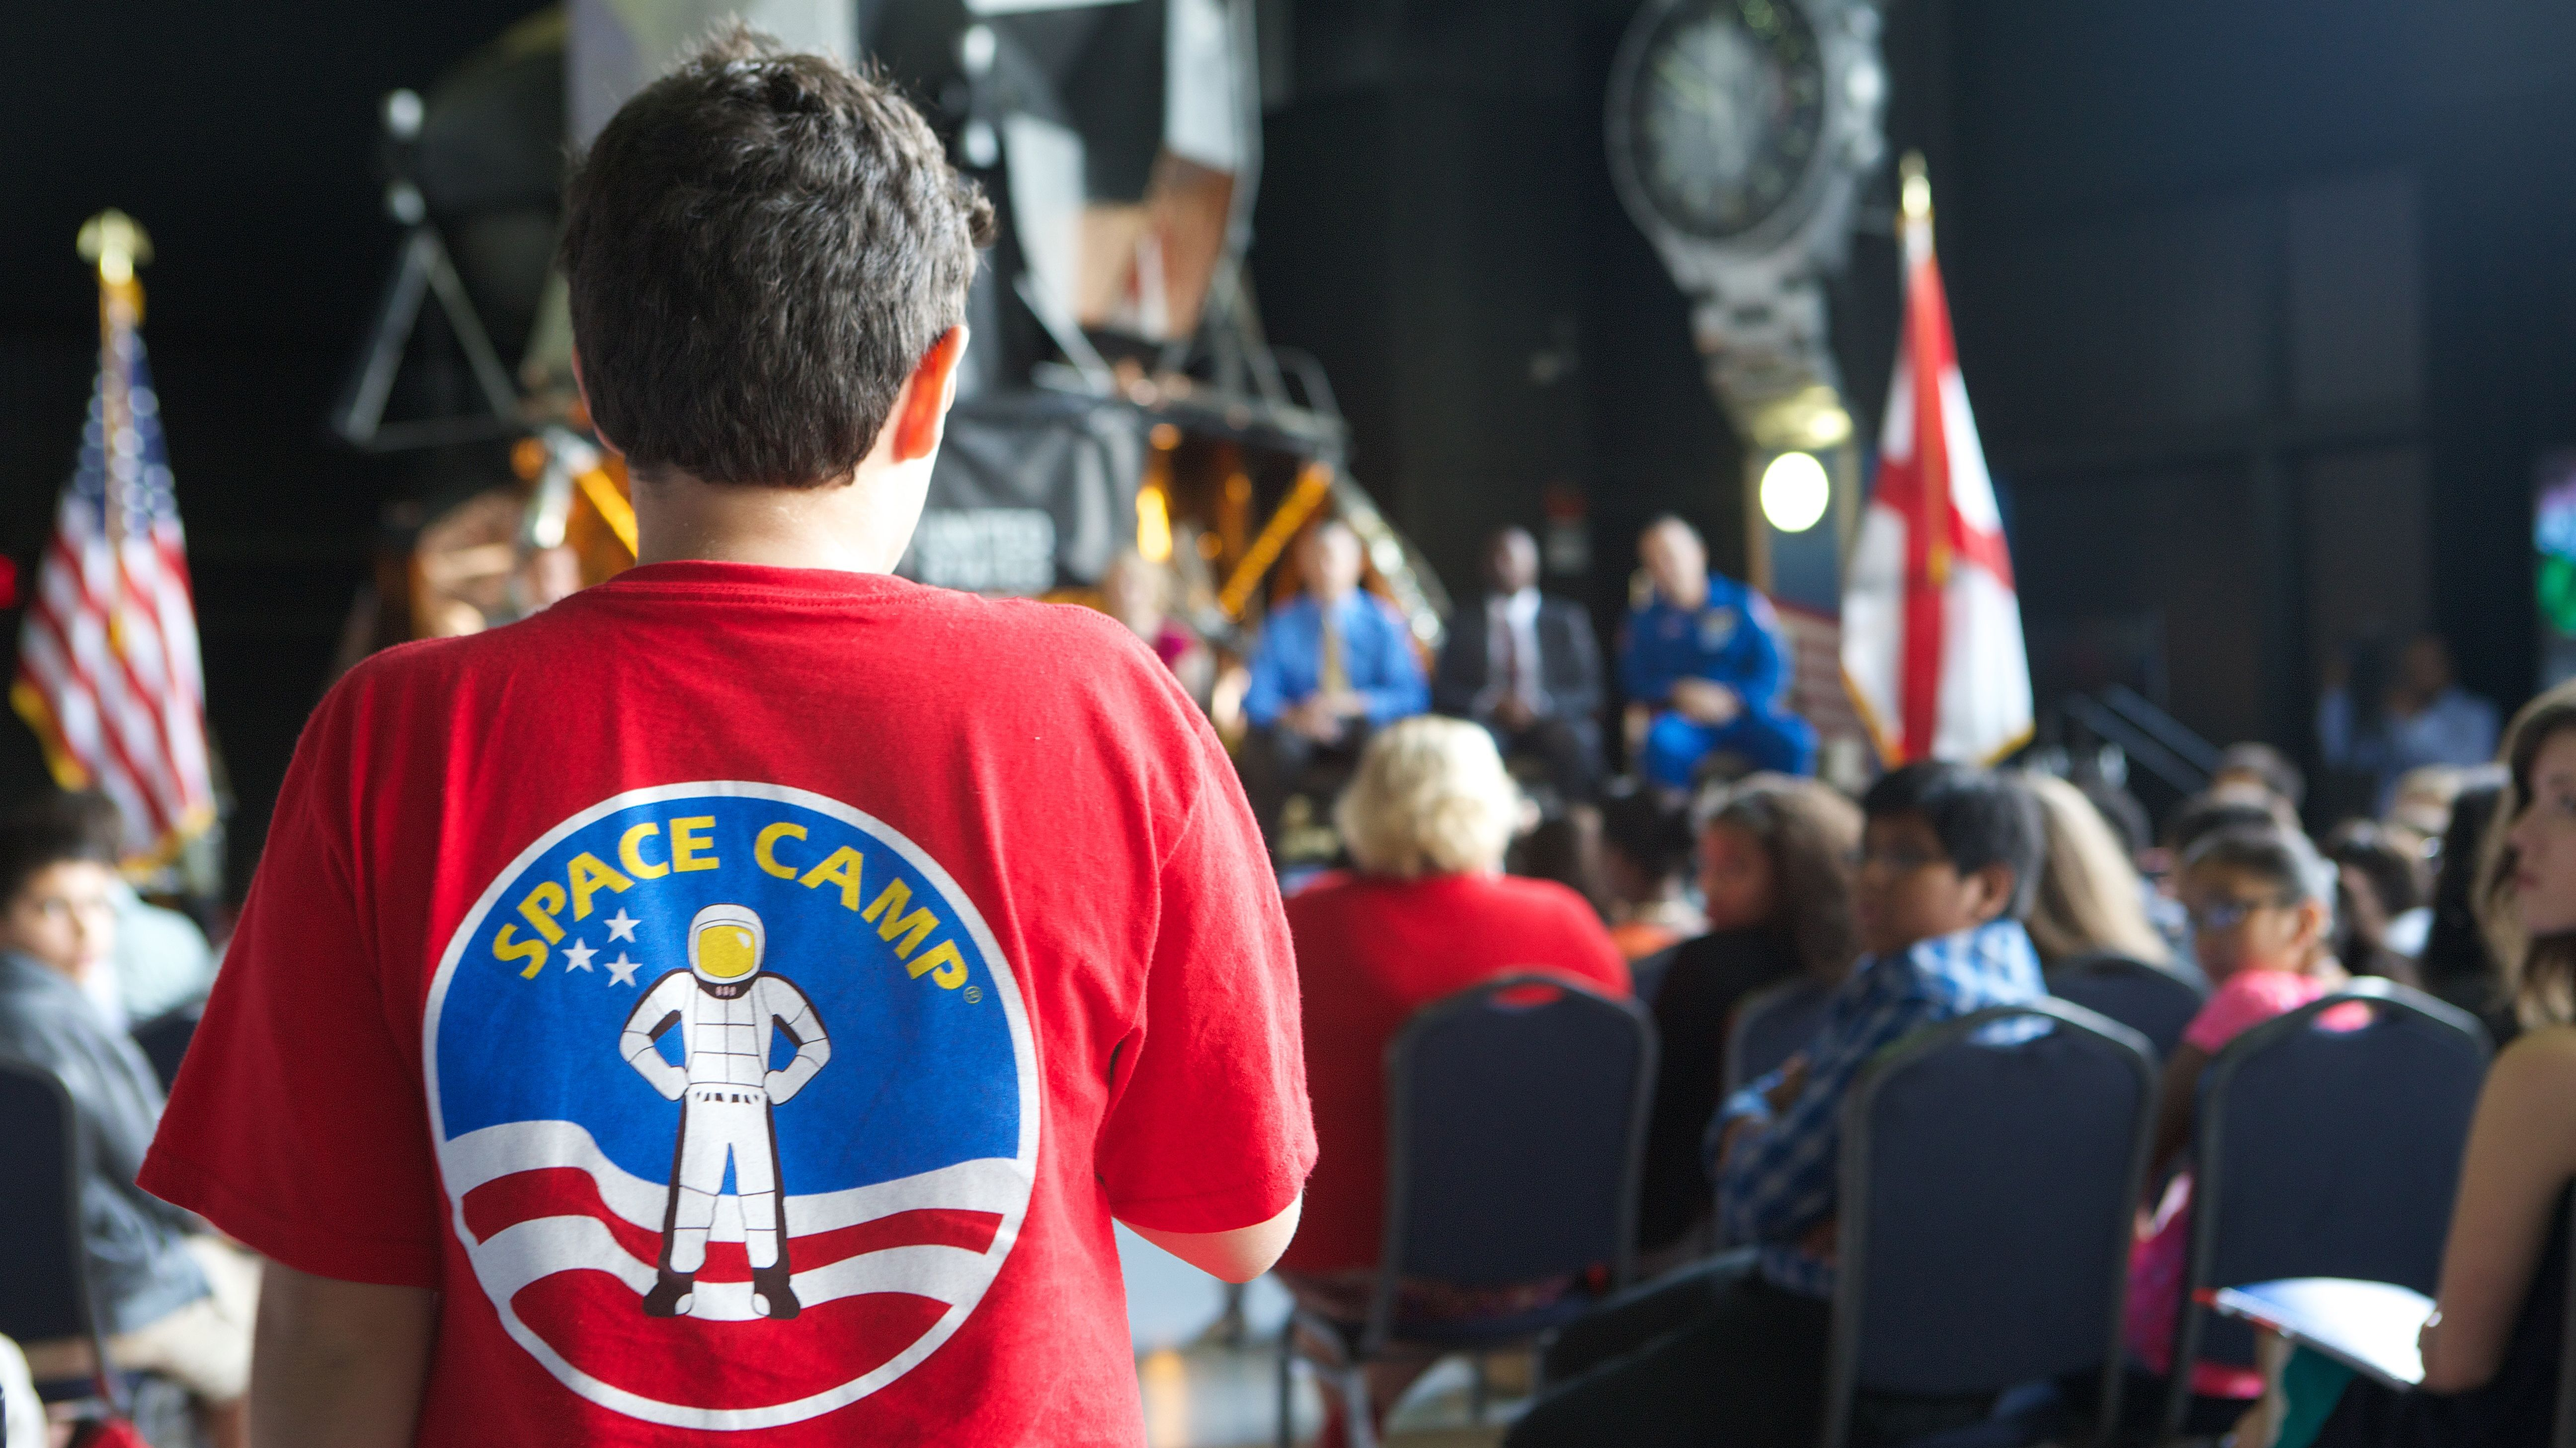 10 Out-of-This-World Facts About Space Camp